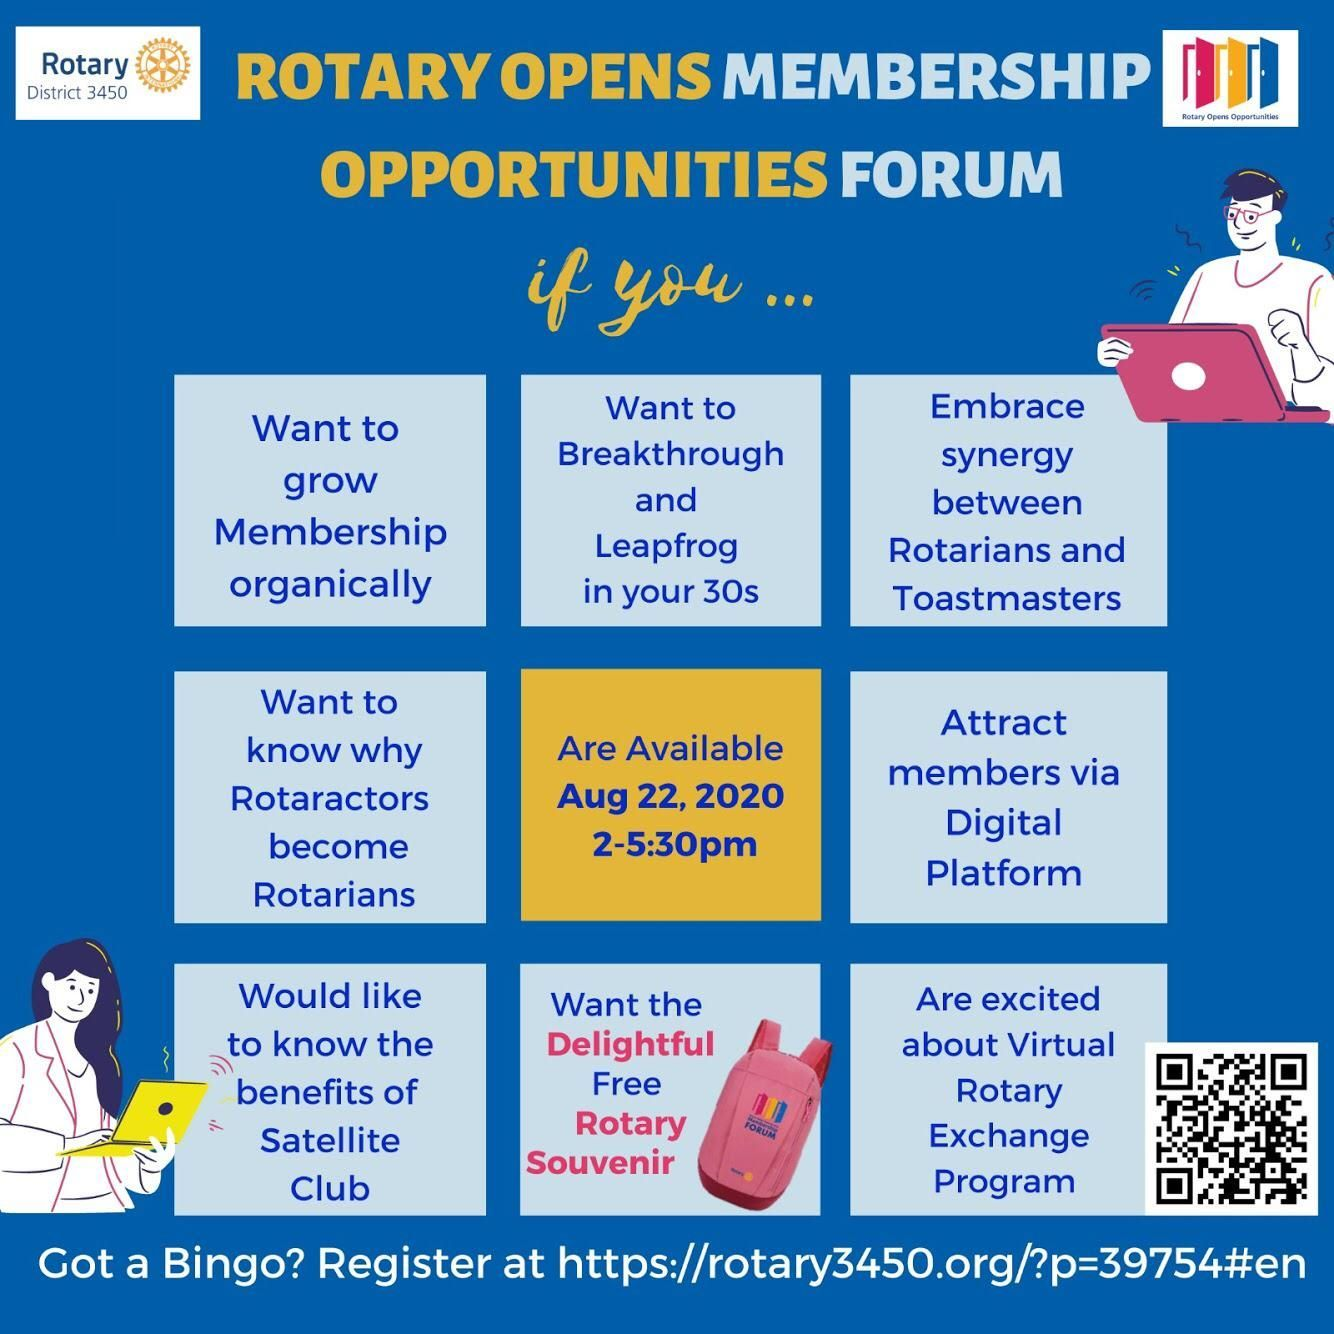 Rotary Opens Membership Opportunities Forum